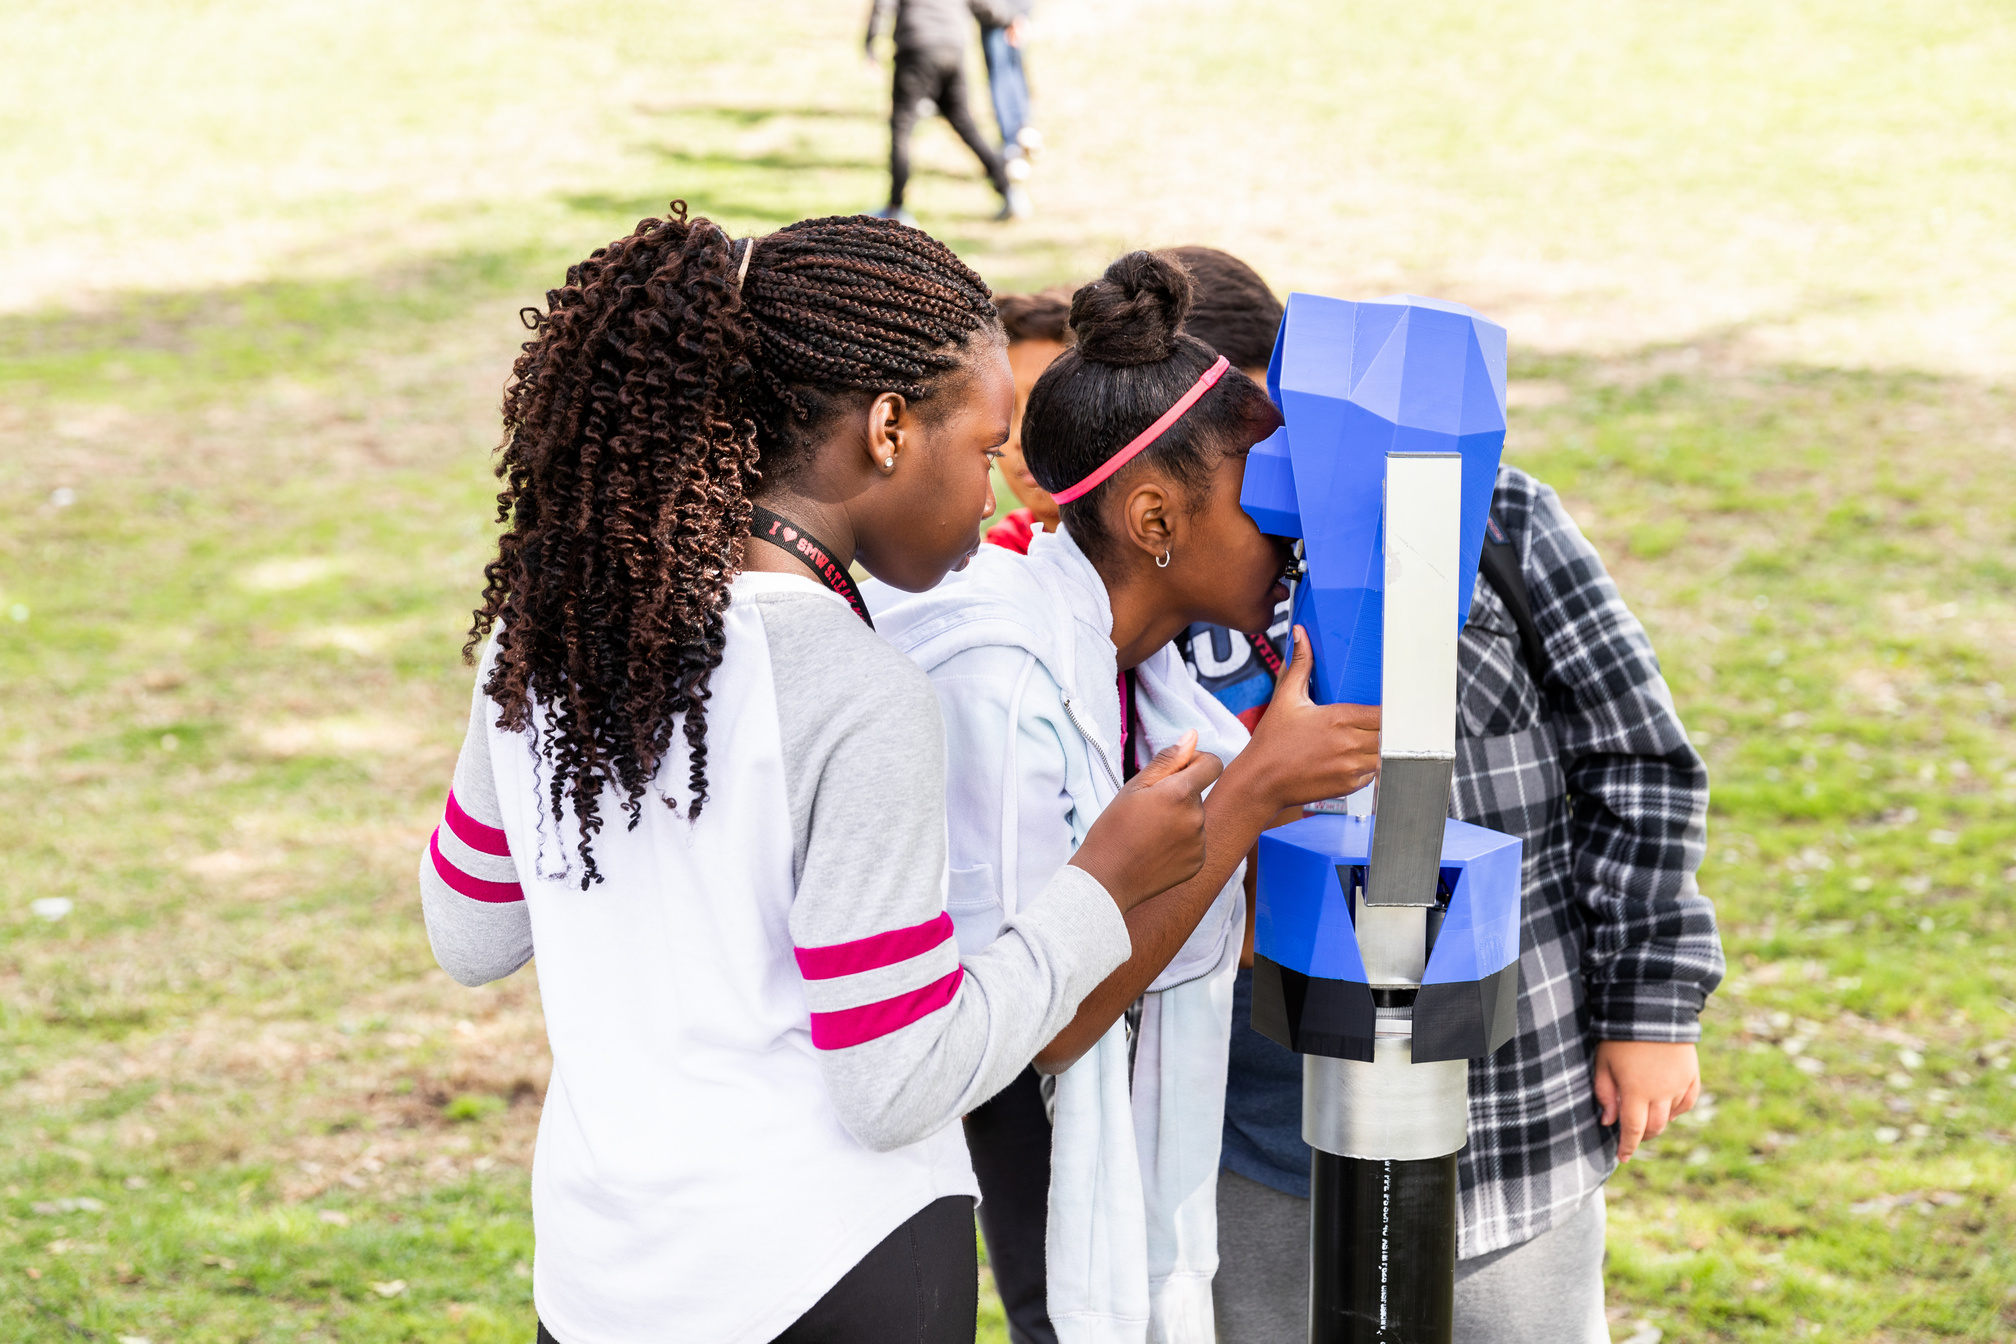 Children looking into a blue device resembling a periscope